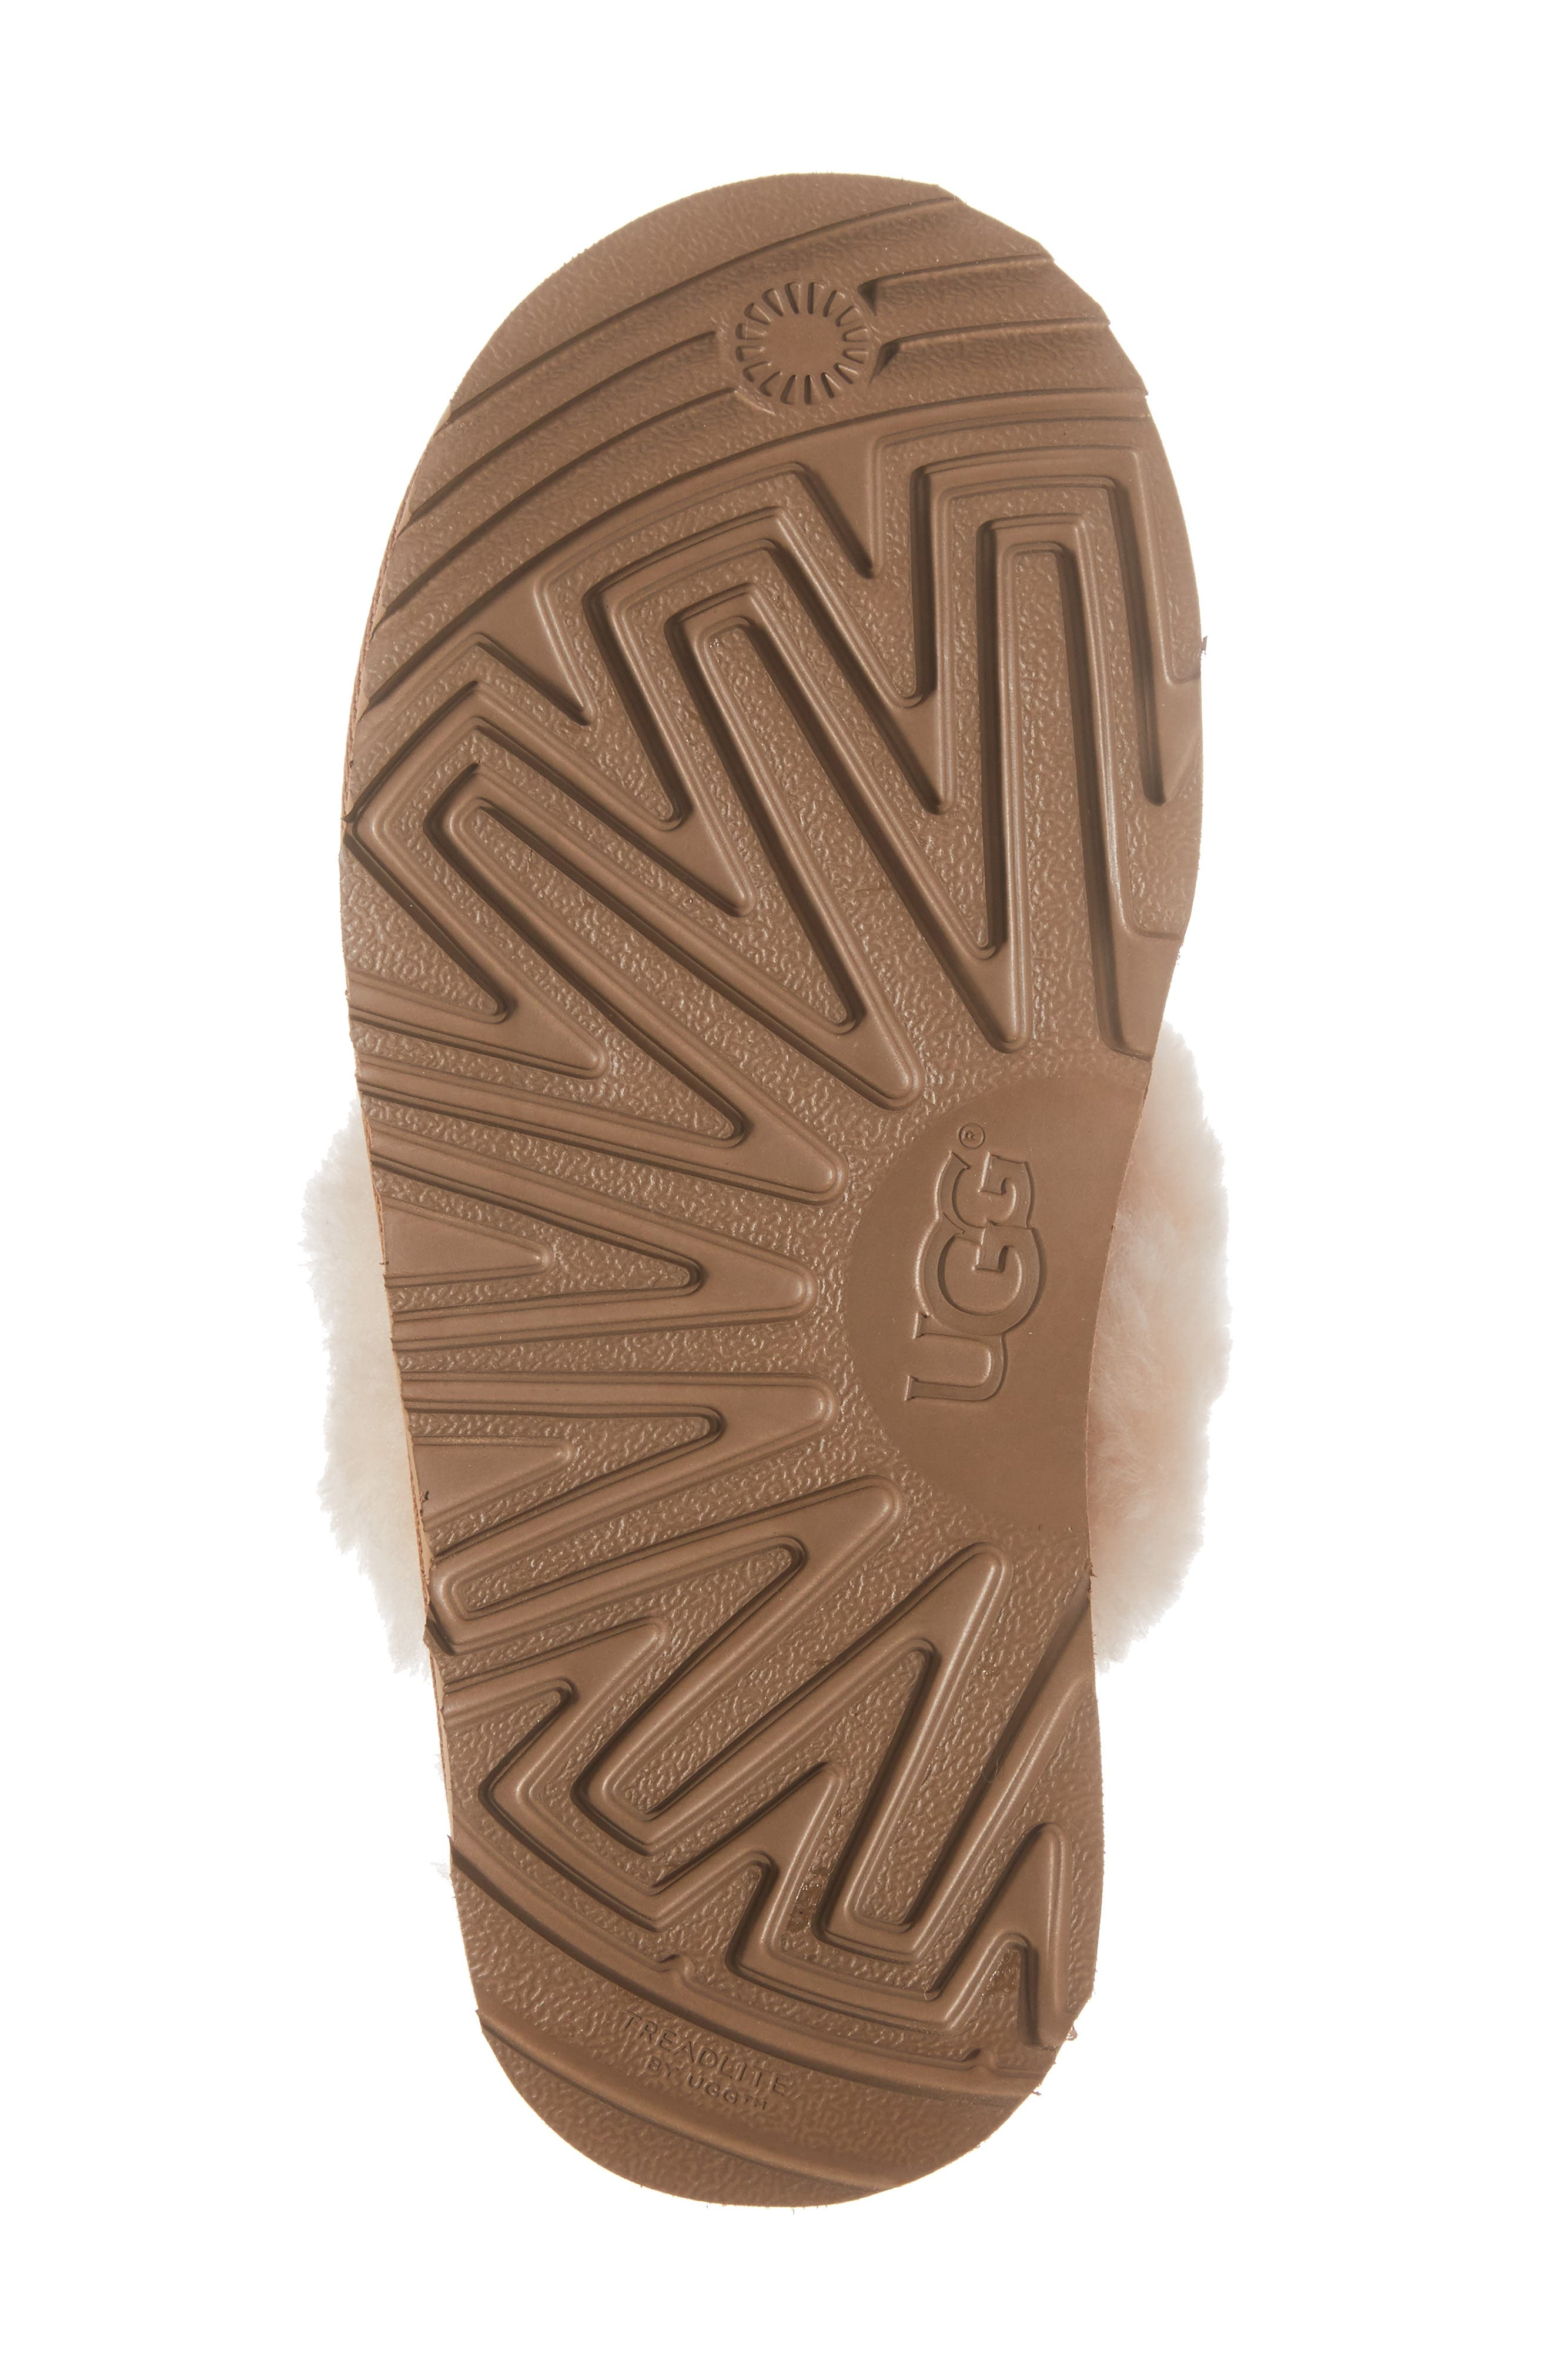 UGG<SUP>®</SUP>, Cozy II Scuff Slipper, Alternate thumbnail 6, color, CHESTNUT